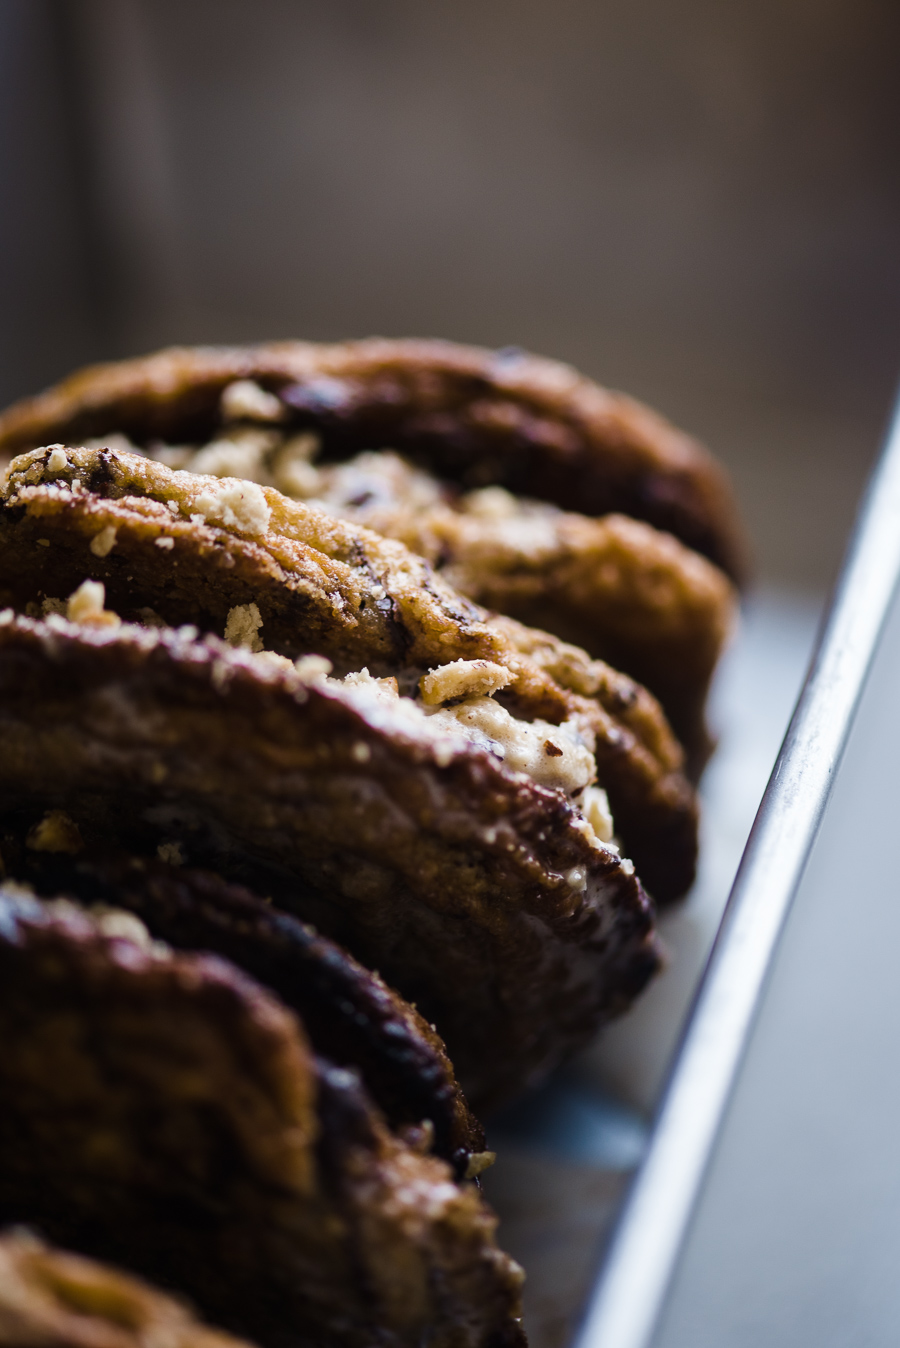 Gather a Table - HALVA ICE CREAM SANDWICH COOKIES WITH HAZELNUTS AND CACAO NIBS